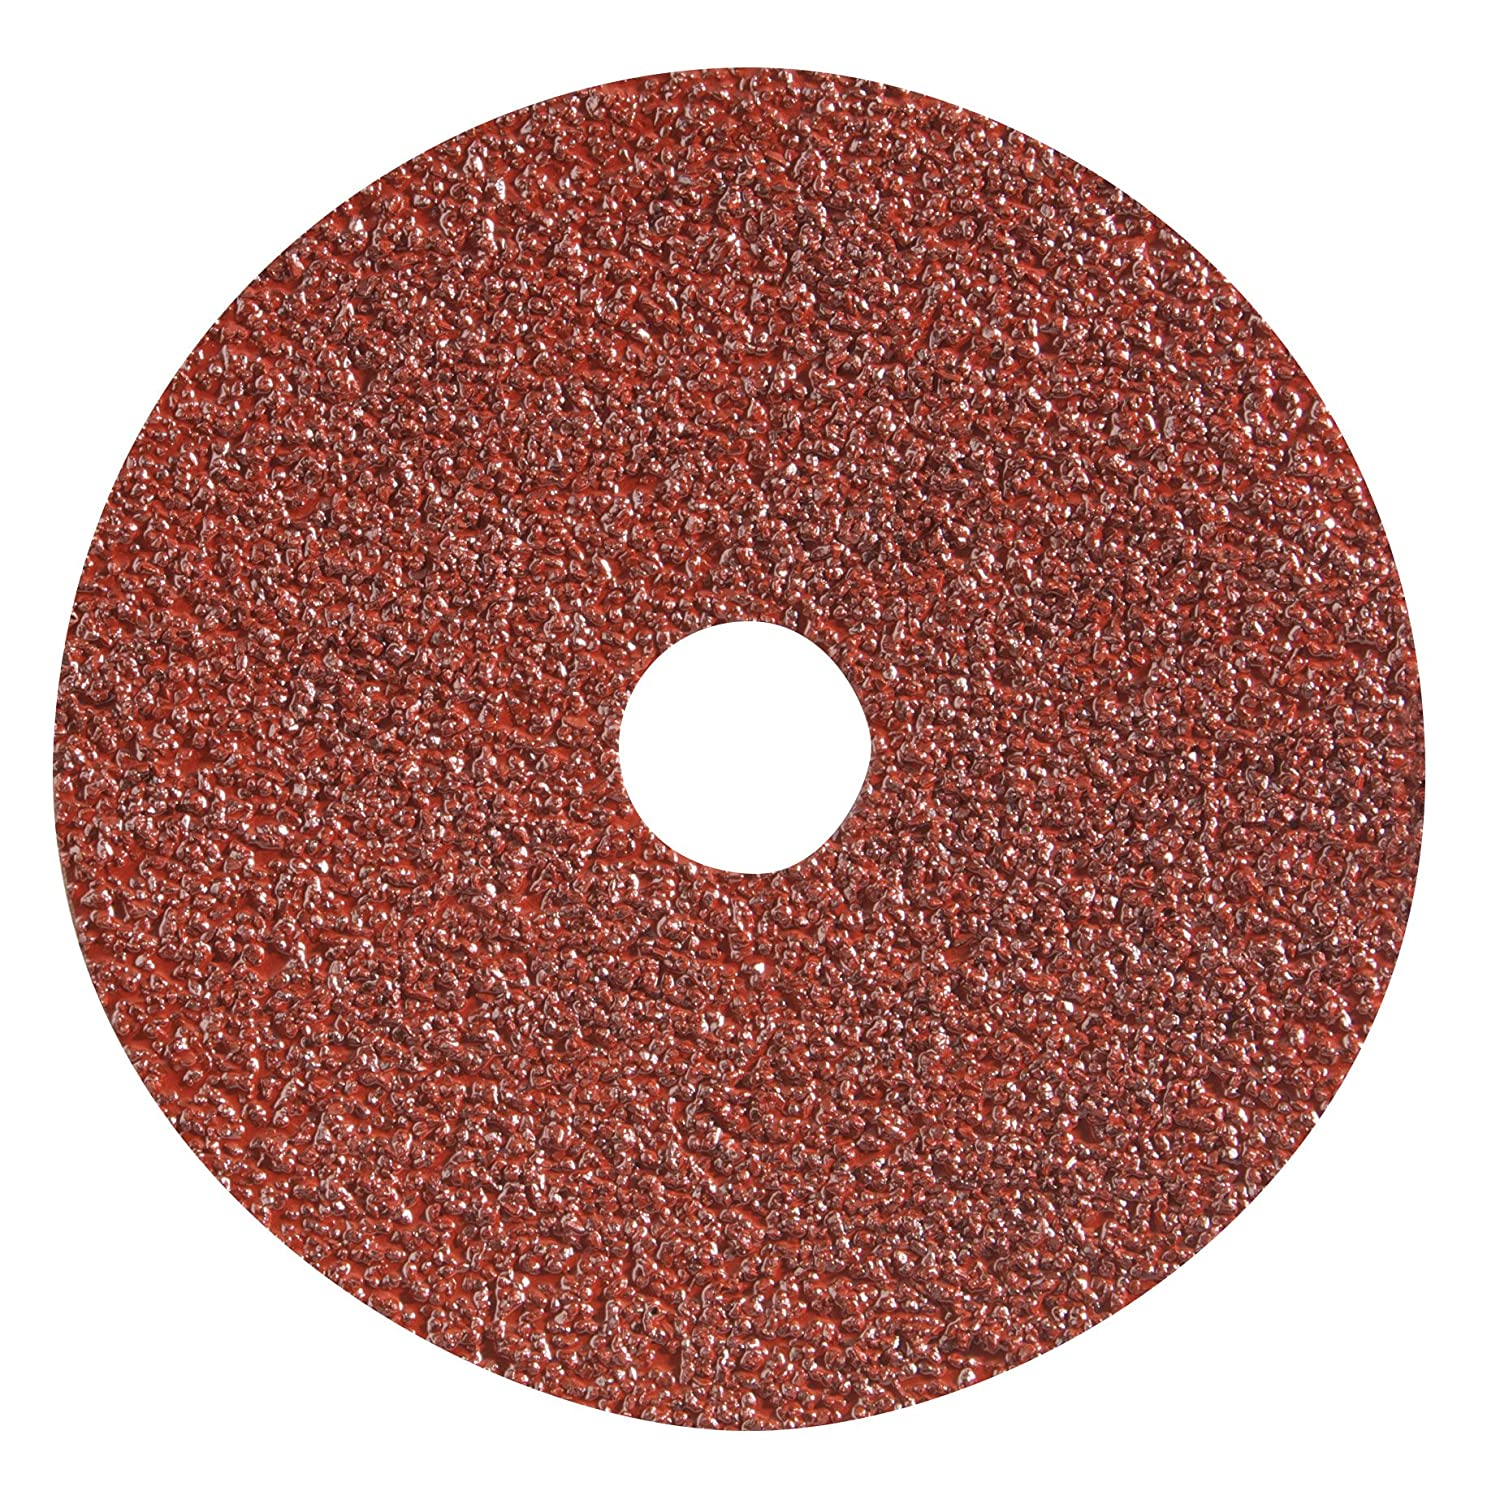 "C-7x7//8-16 Spiralcool C-7x7//8-16 All Purpose Resin Fiber Discs 16 Grit /""C/"" Type- Aluminum Oxide Pack of 25"